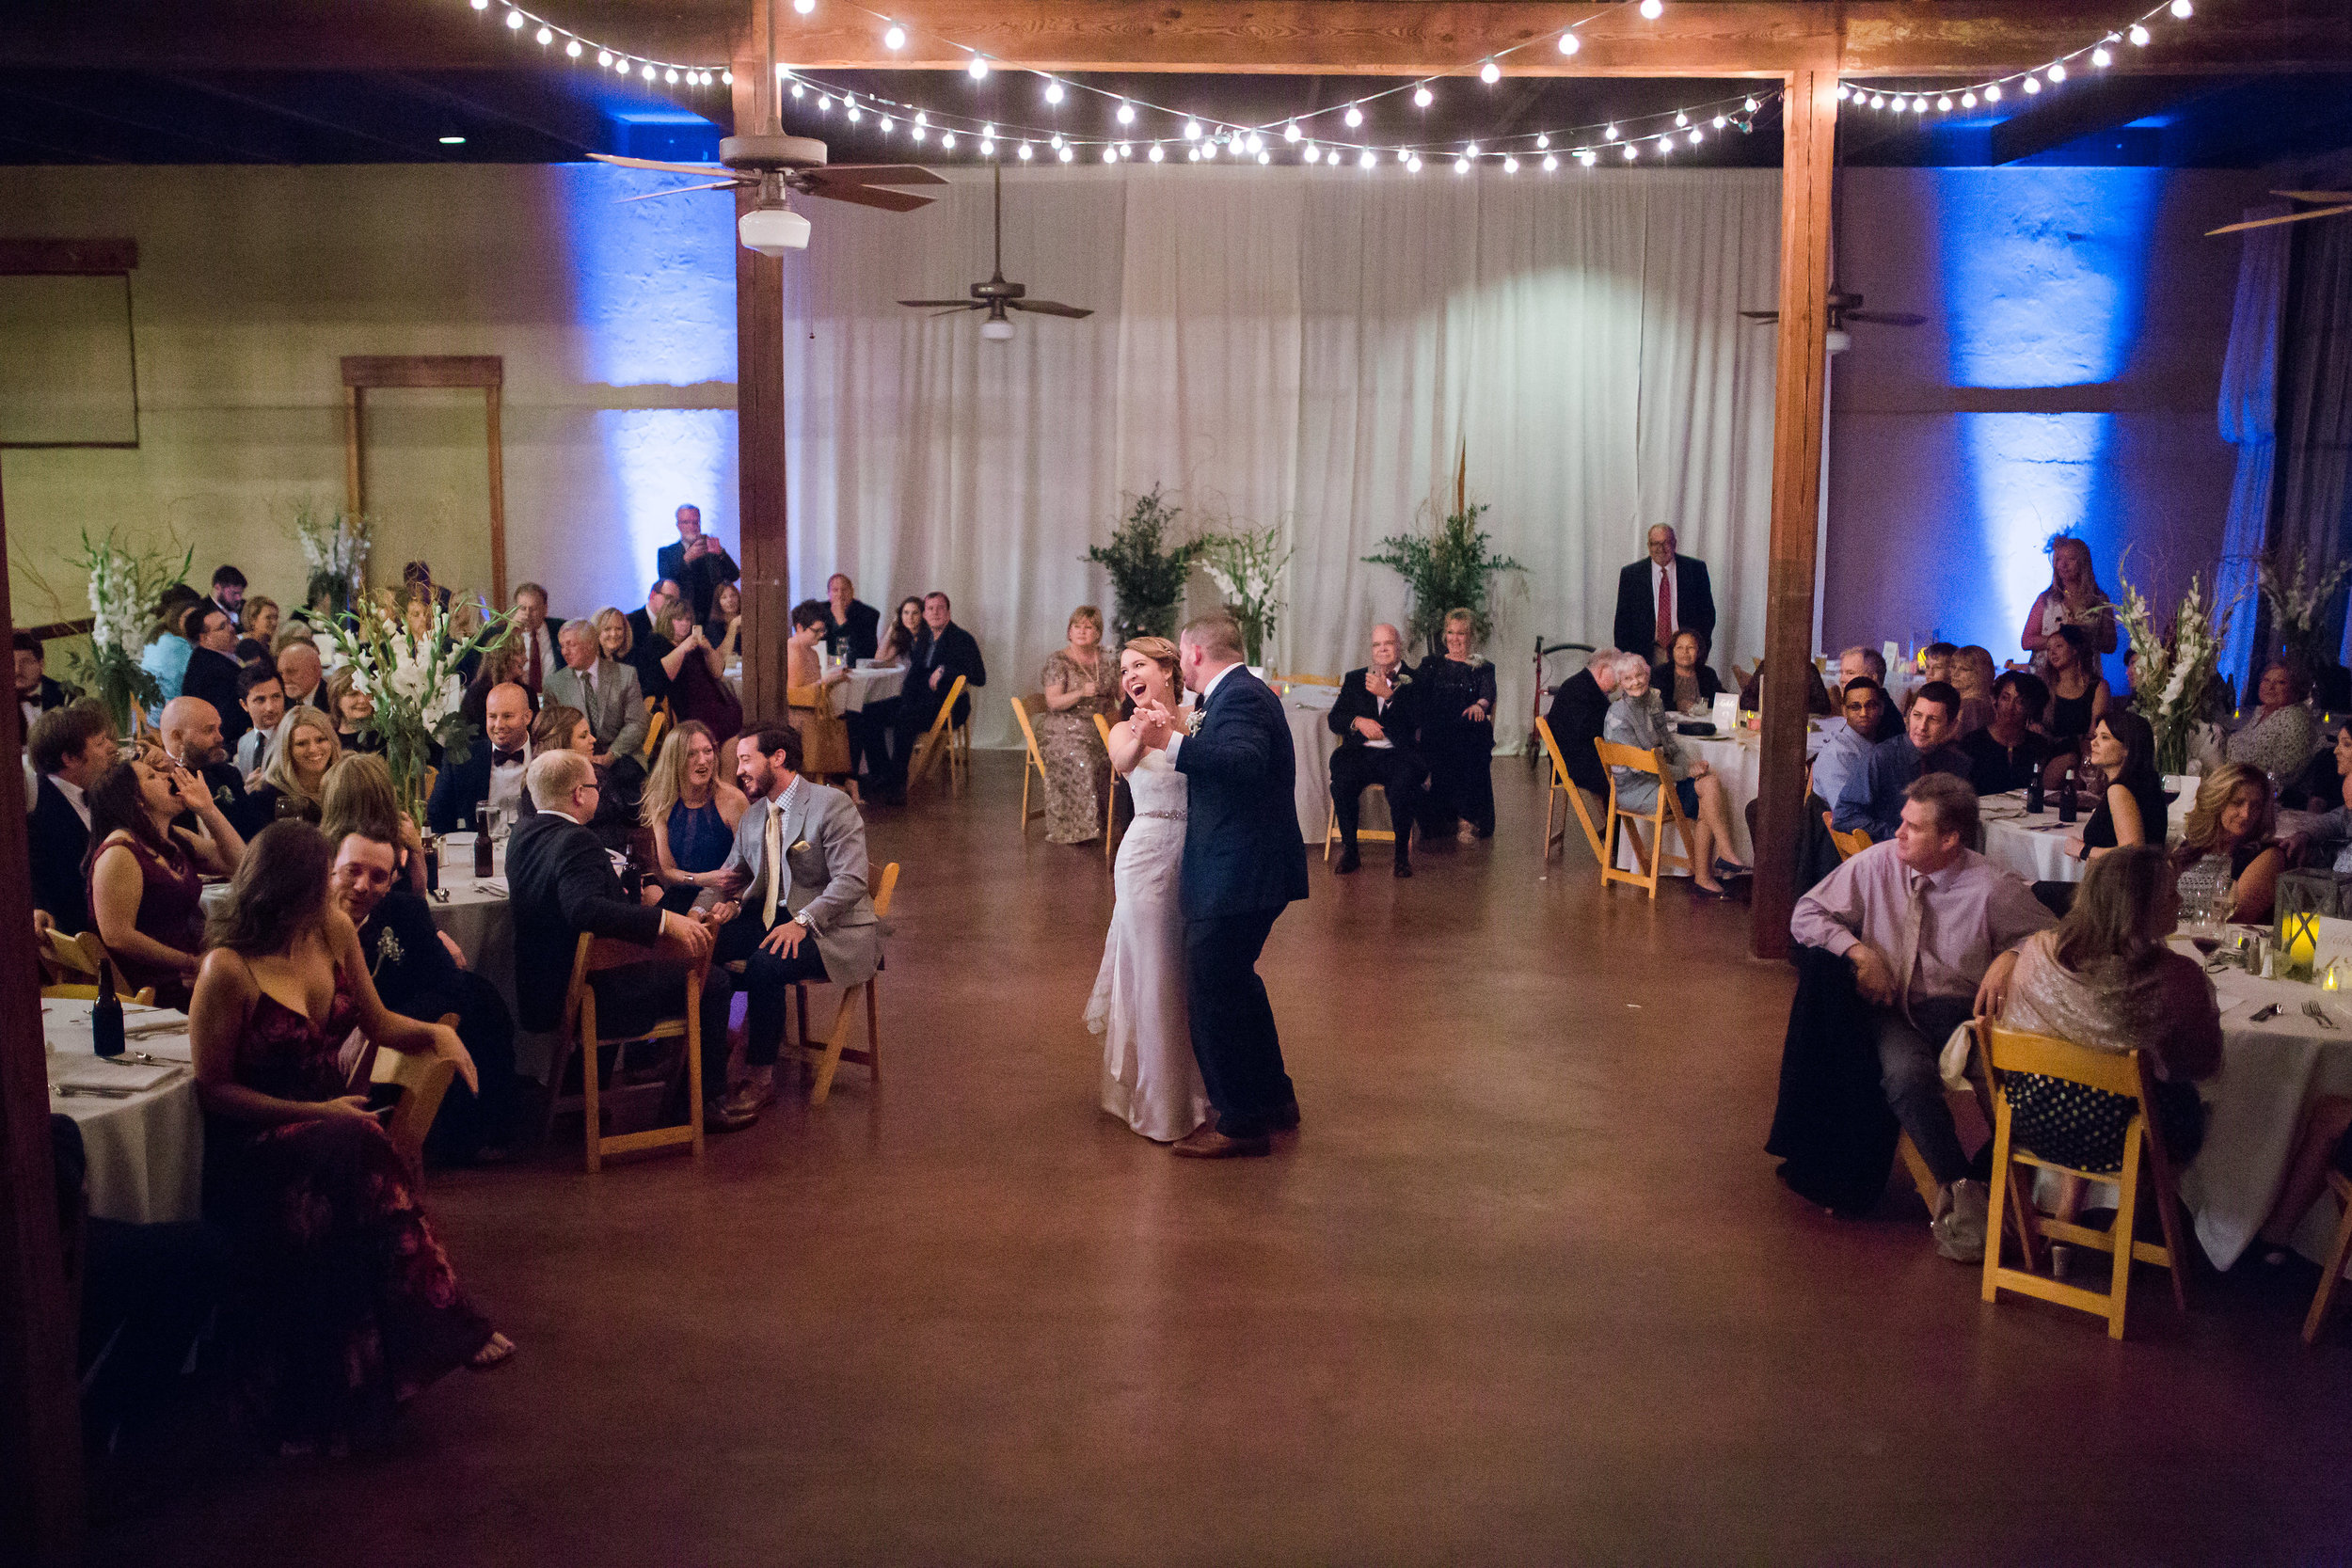 Wedding at the Trolley Station in Galveston, TX | Houston and Galveston Wedding Planners